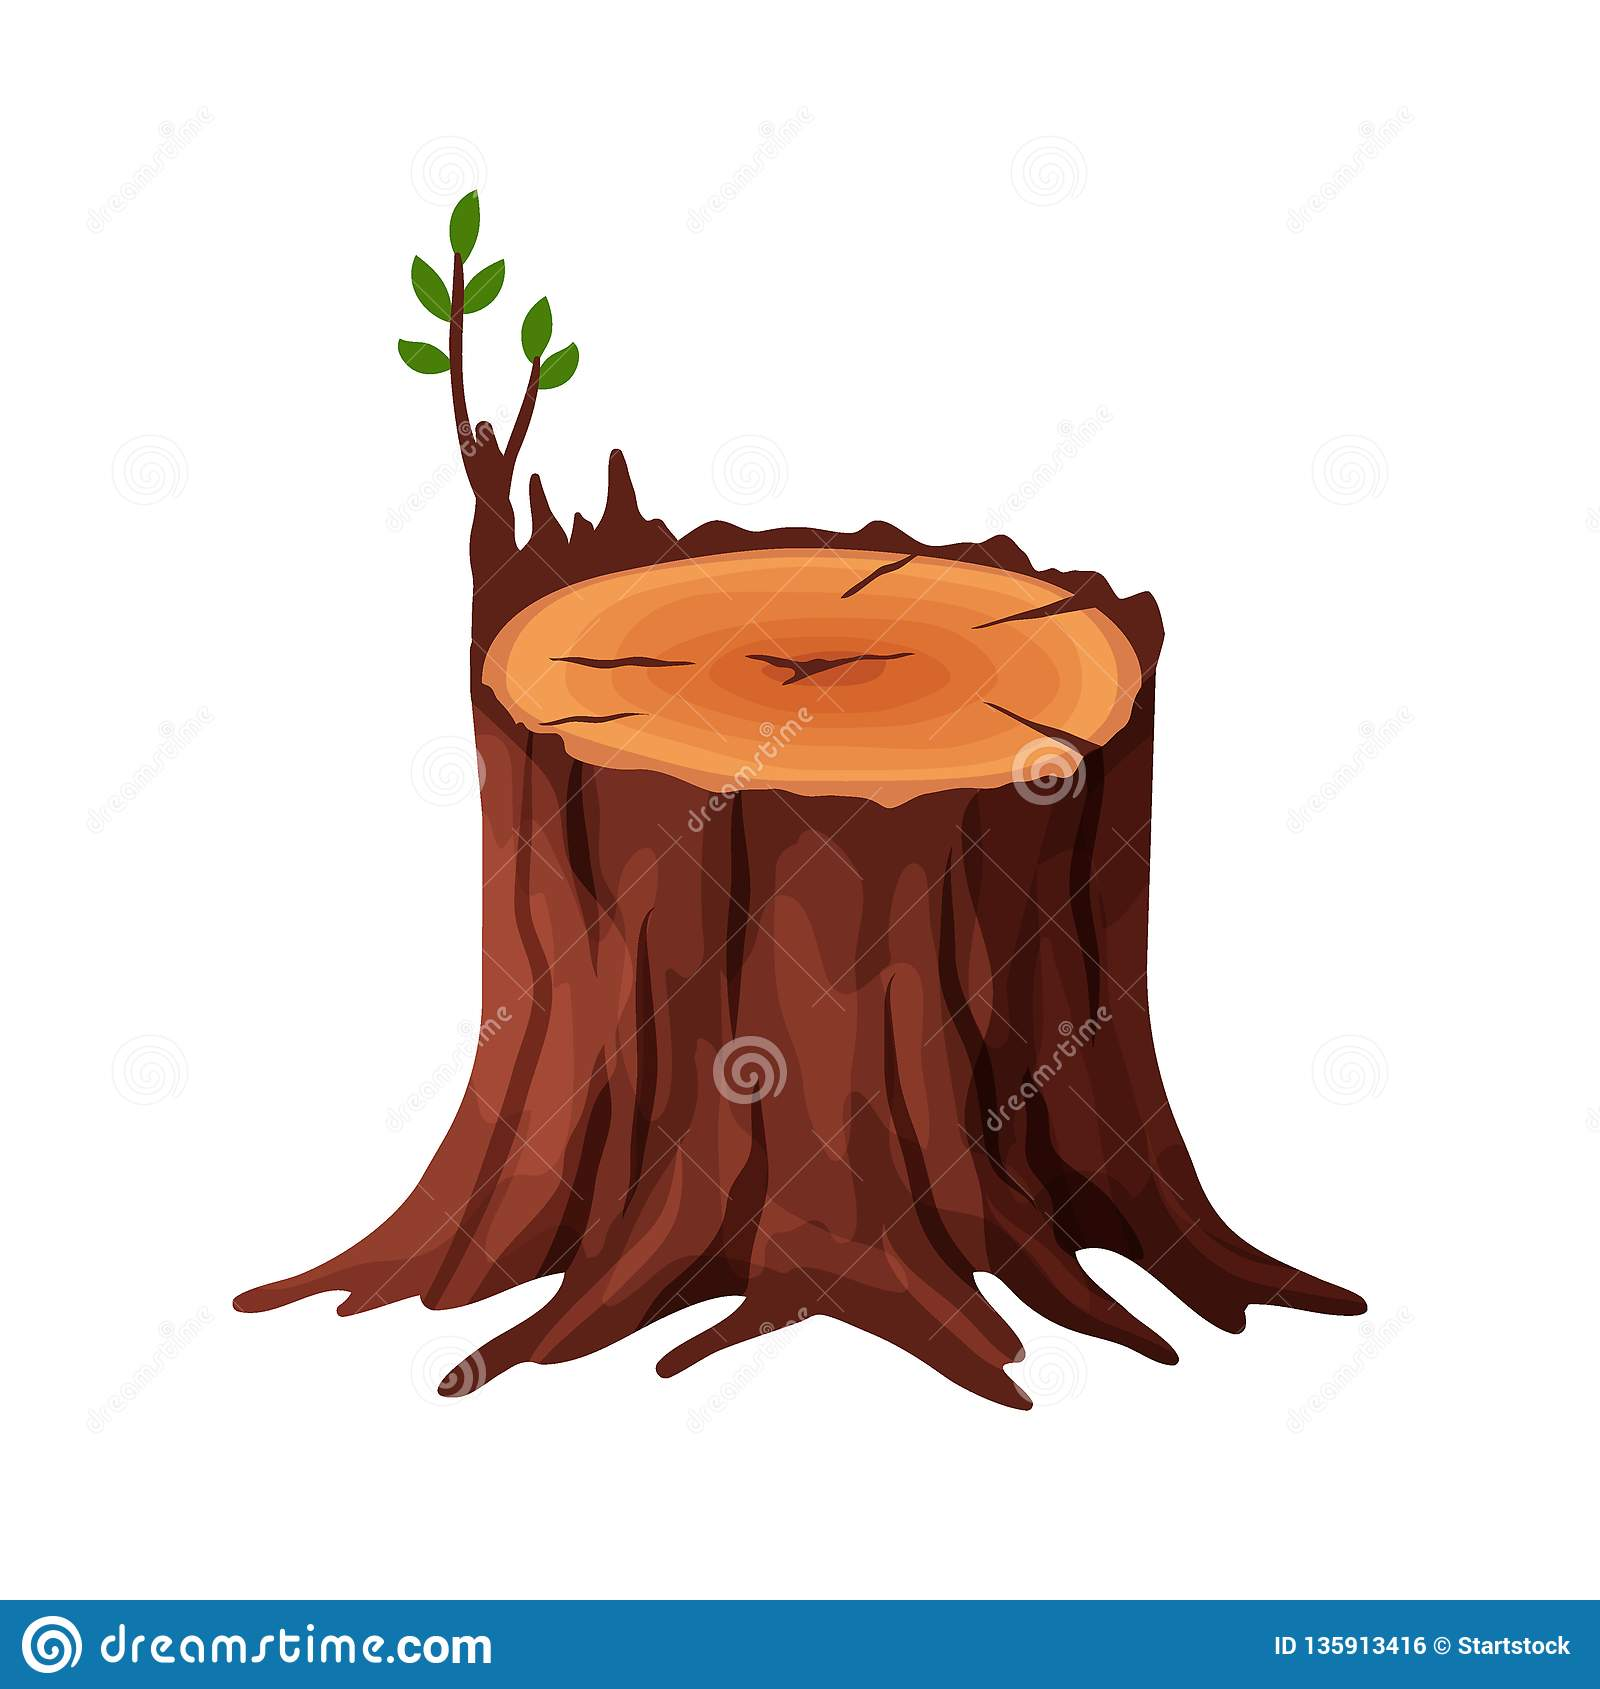 Cartoon Old Tree Stock Illustrations 20 523 Cartoon Old Tree Stock Illustrations Vectors Clipart Dreamstime Tree trunks is the fourth episode of the first season of the american animated television series adventure time. https www dreamstime com cartoon old tree stump cracks roots isolated white background vector illustration image135913416